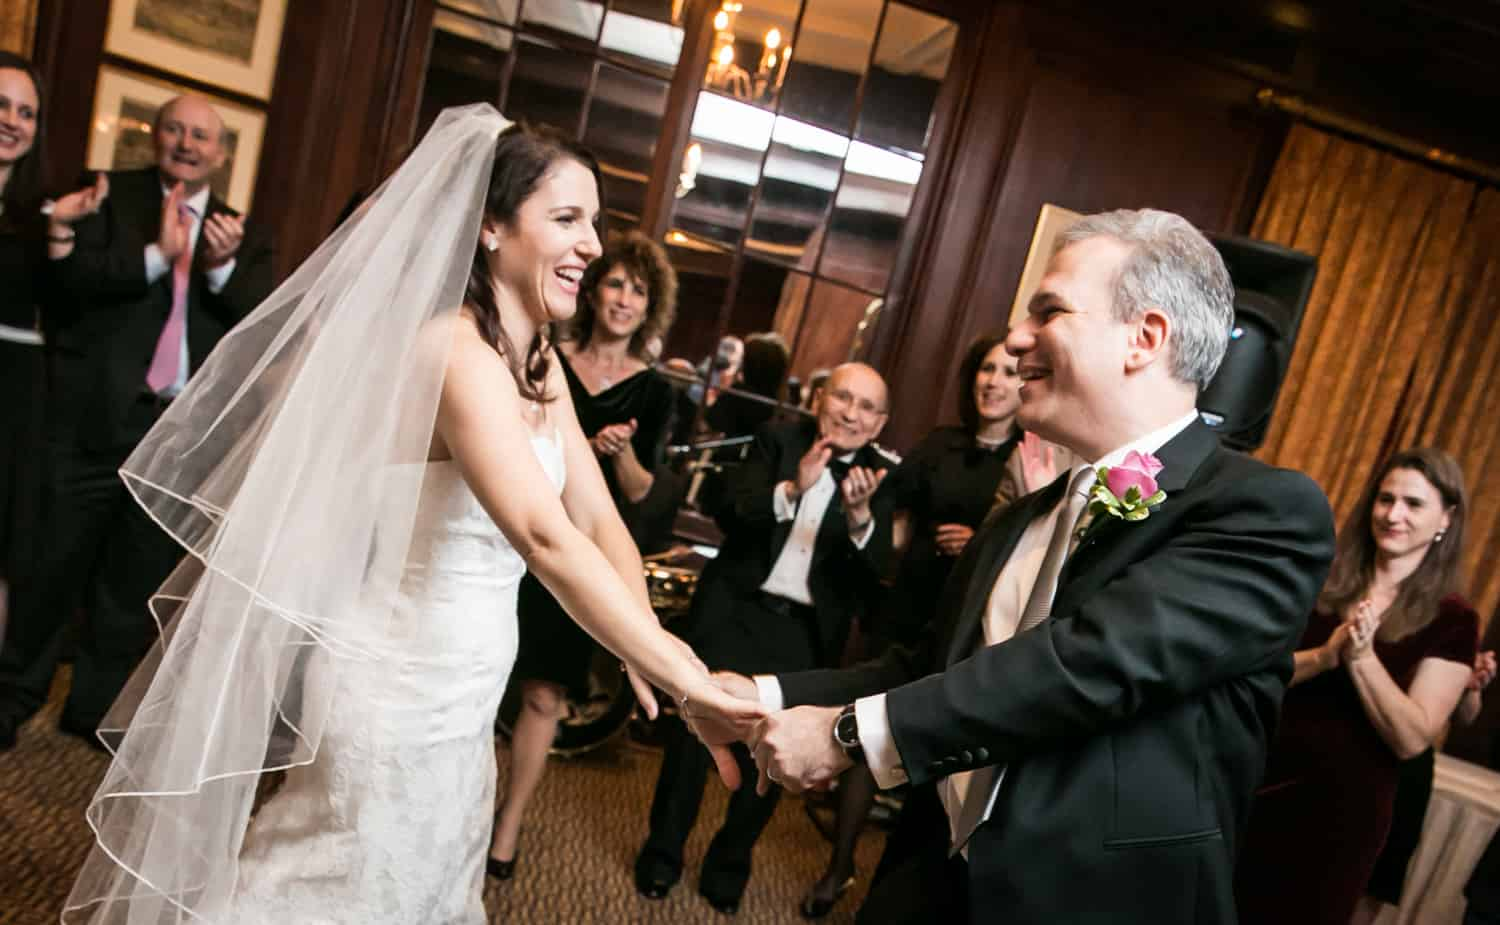 Bride and groom holding hands and dancing the hora at Harvard Club wedding